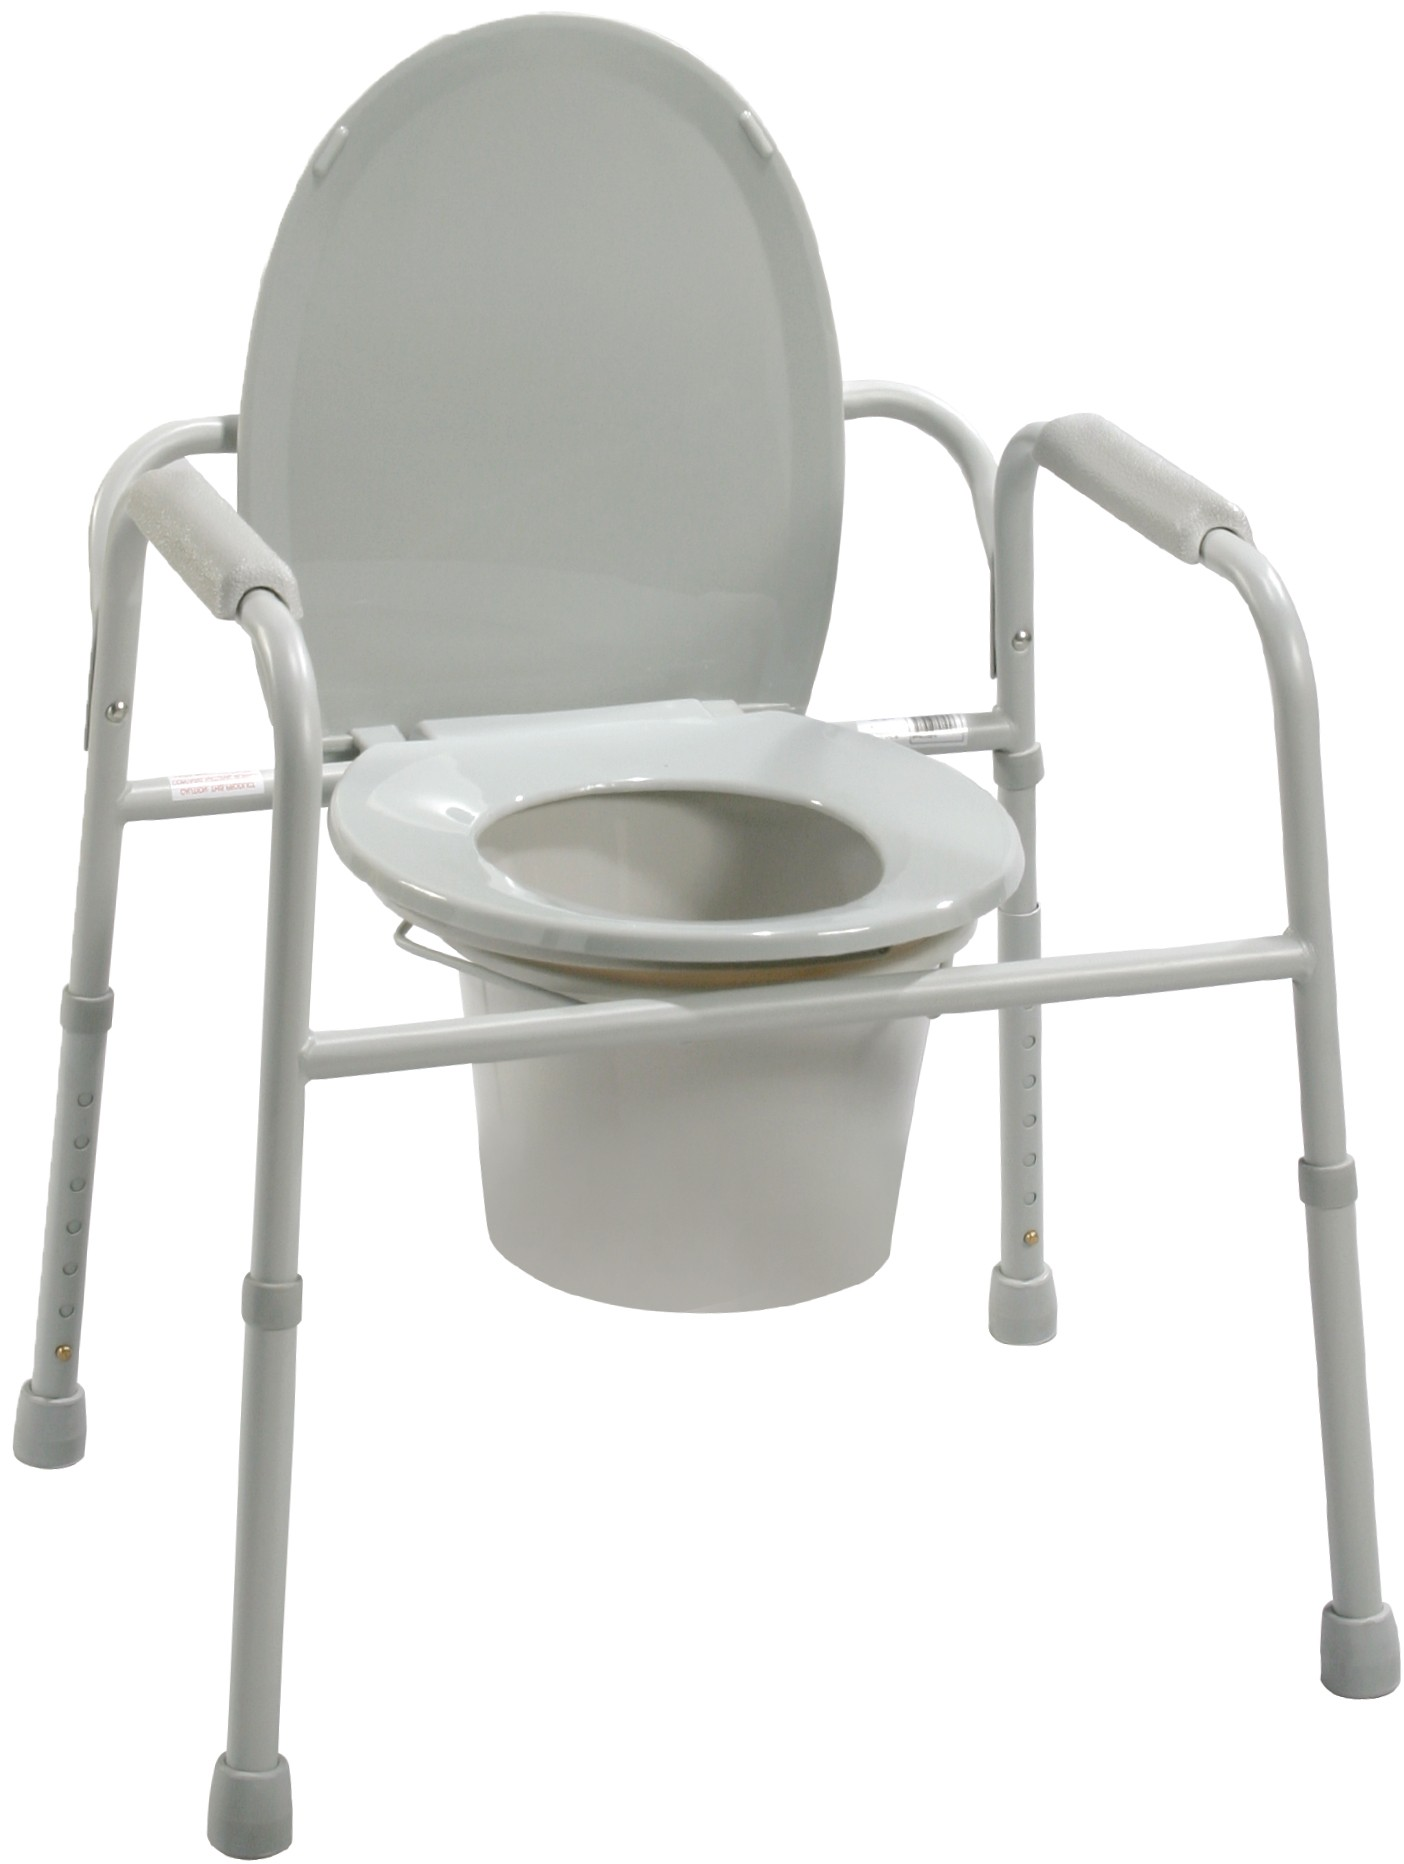 Drive deluxe all-in-one steel commode with armrests